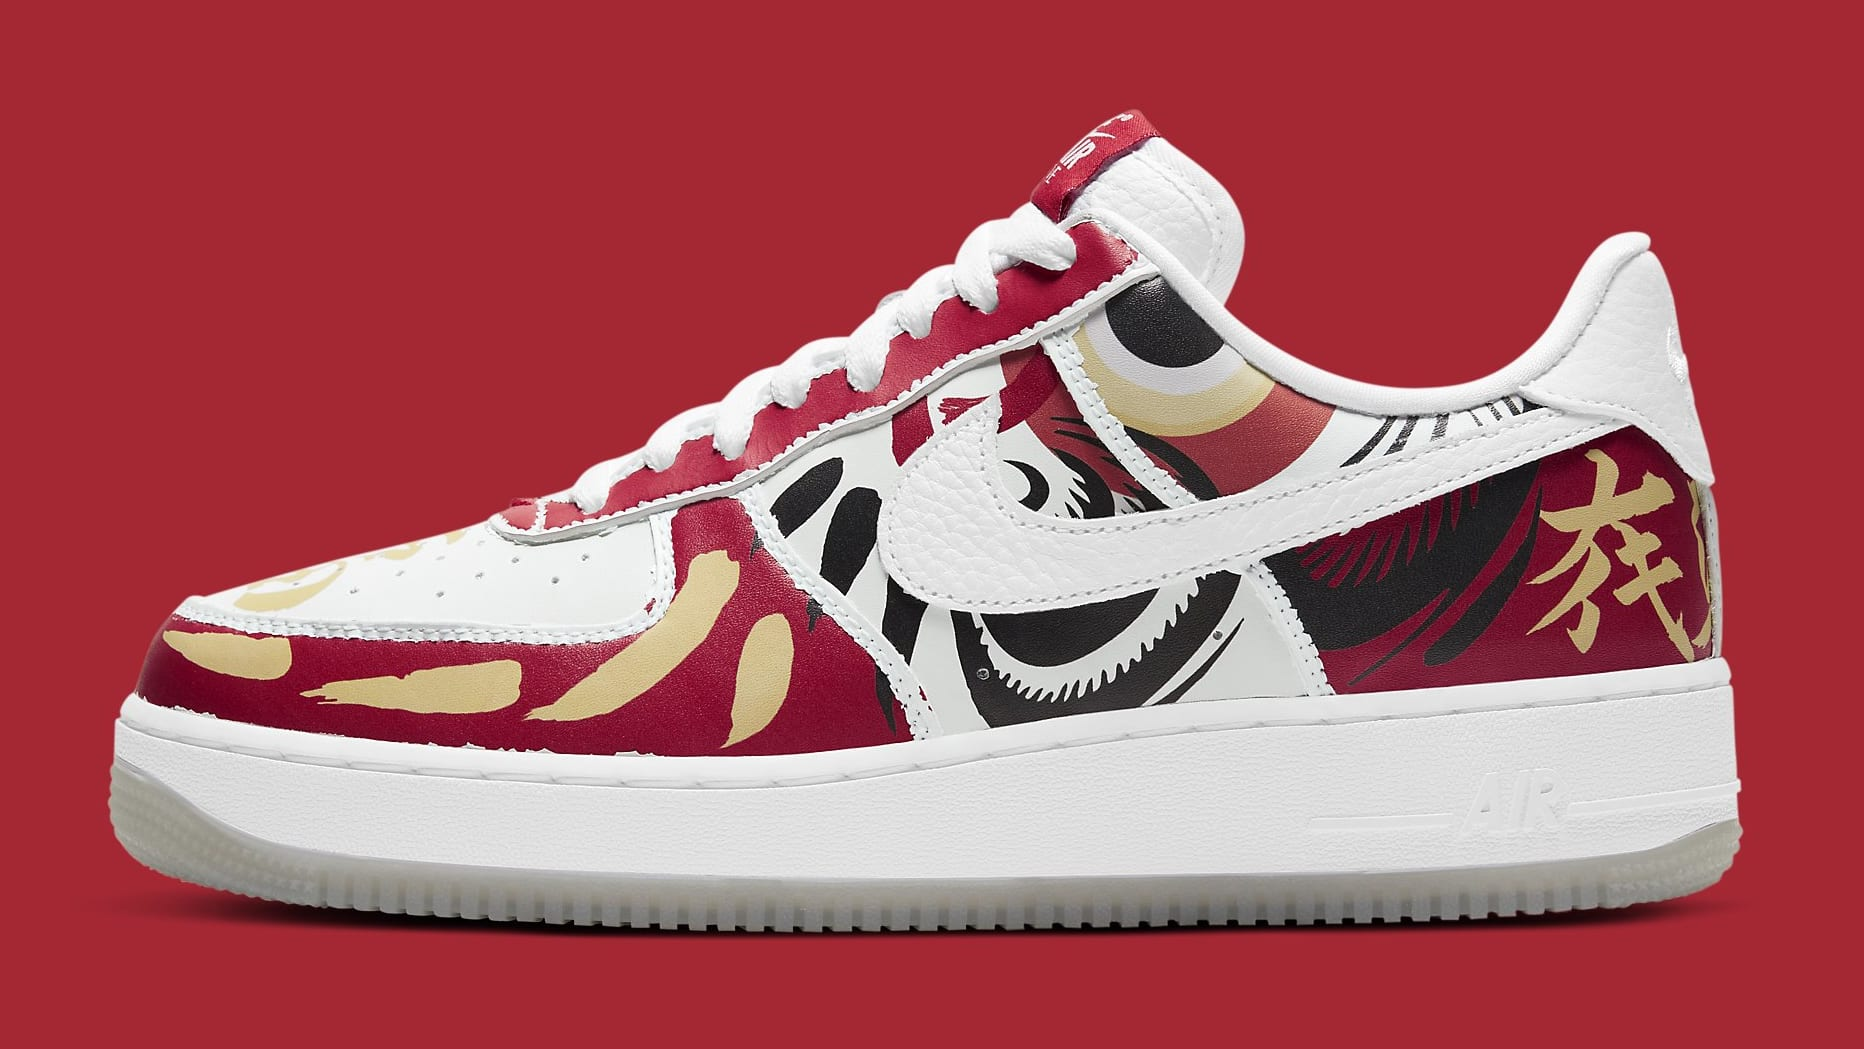 BAIT x Nike Air Force 1 Low 'I Believe' DD9941-100 Tear-Away Lateral